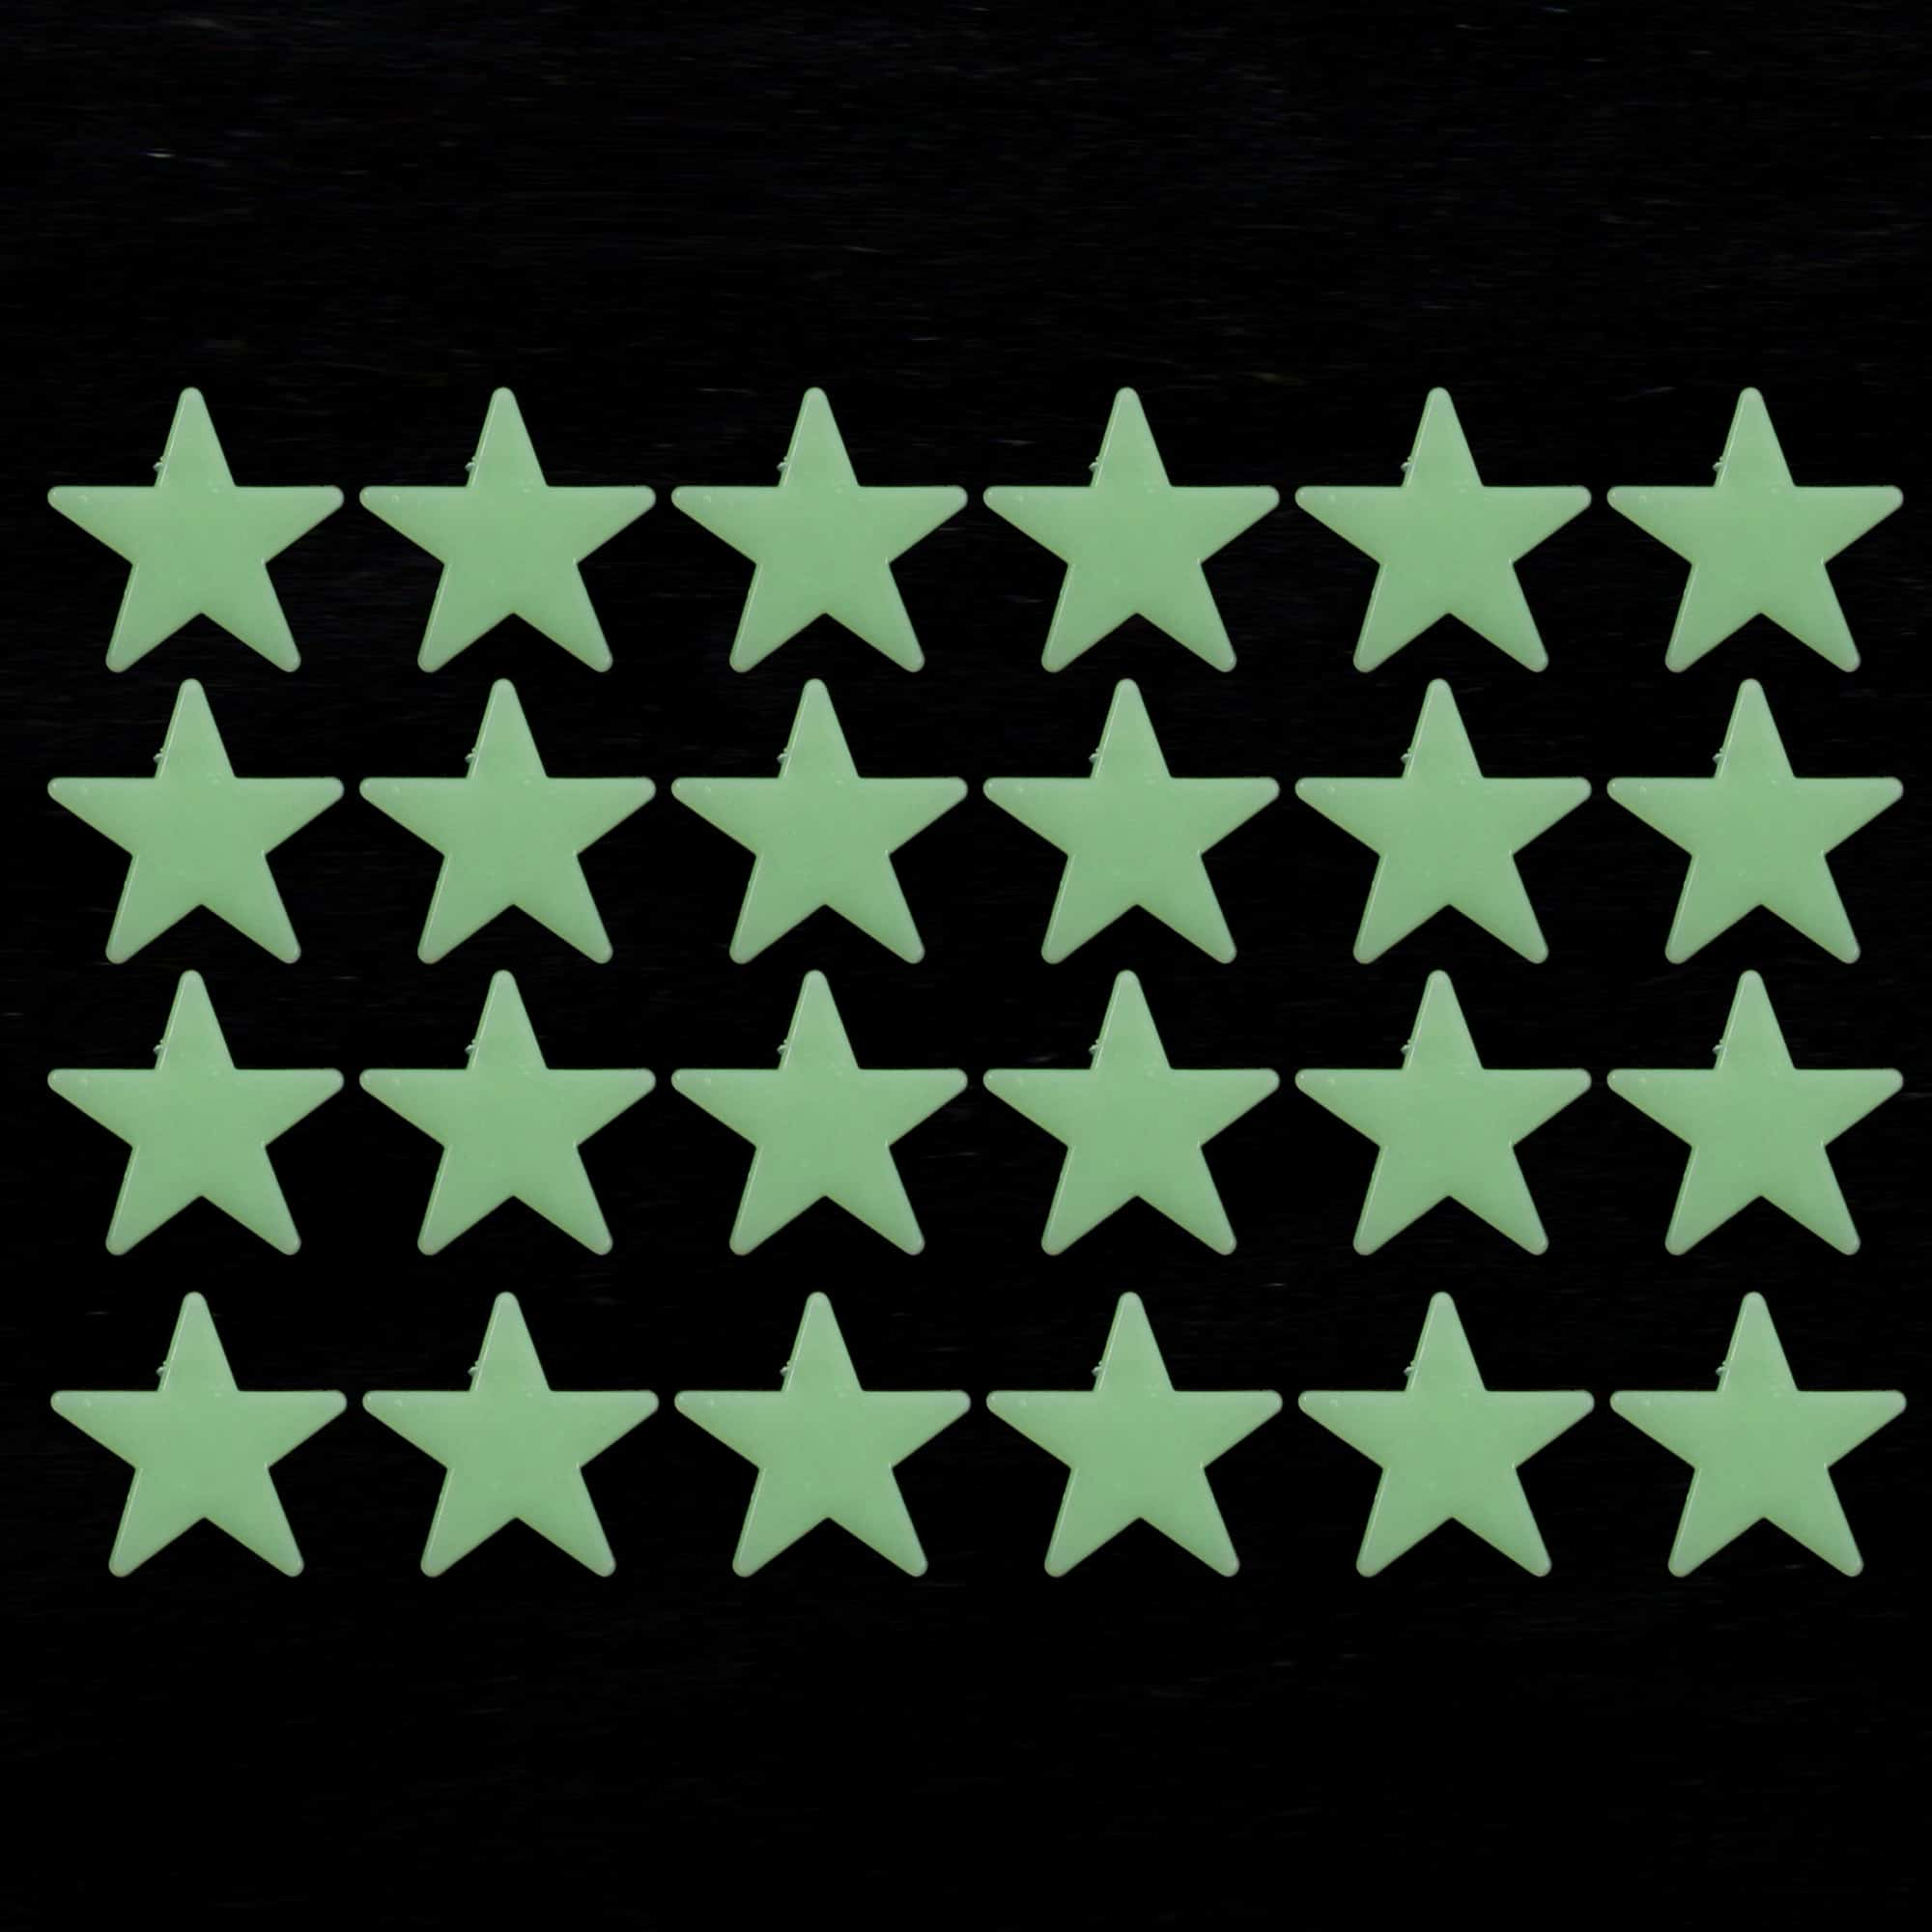 Pack of 24 plastic stars that glow in the dark after being exposed to llight.